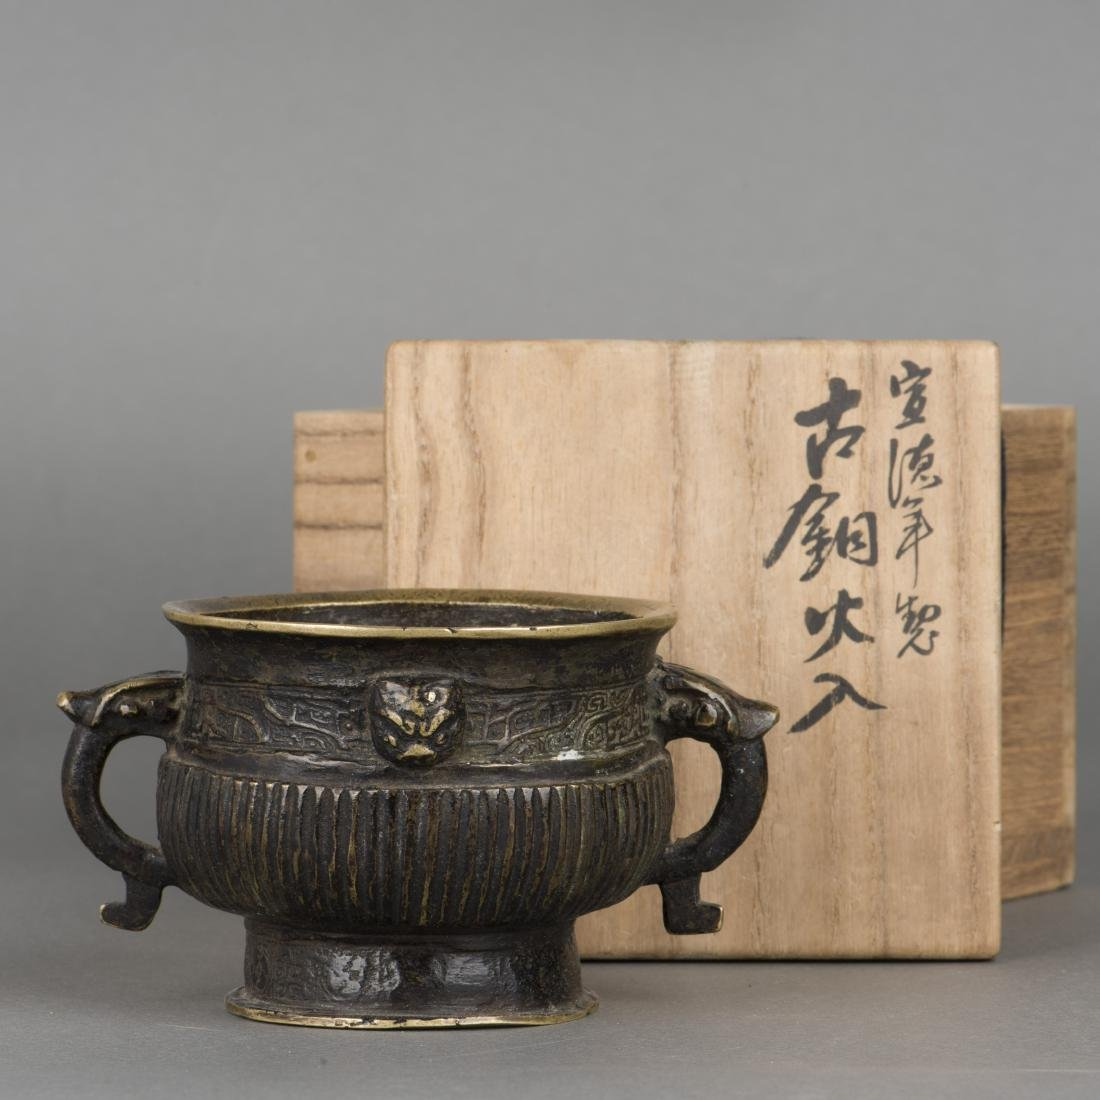 A XUANDE STYLE BRONZE VASE, 19TH CENTURY